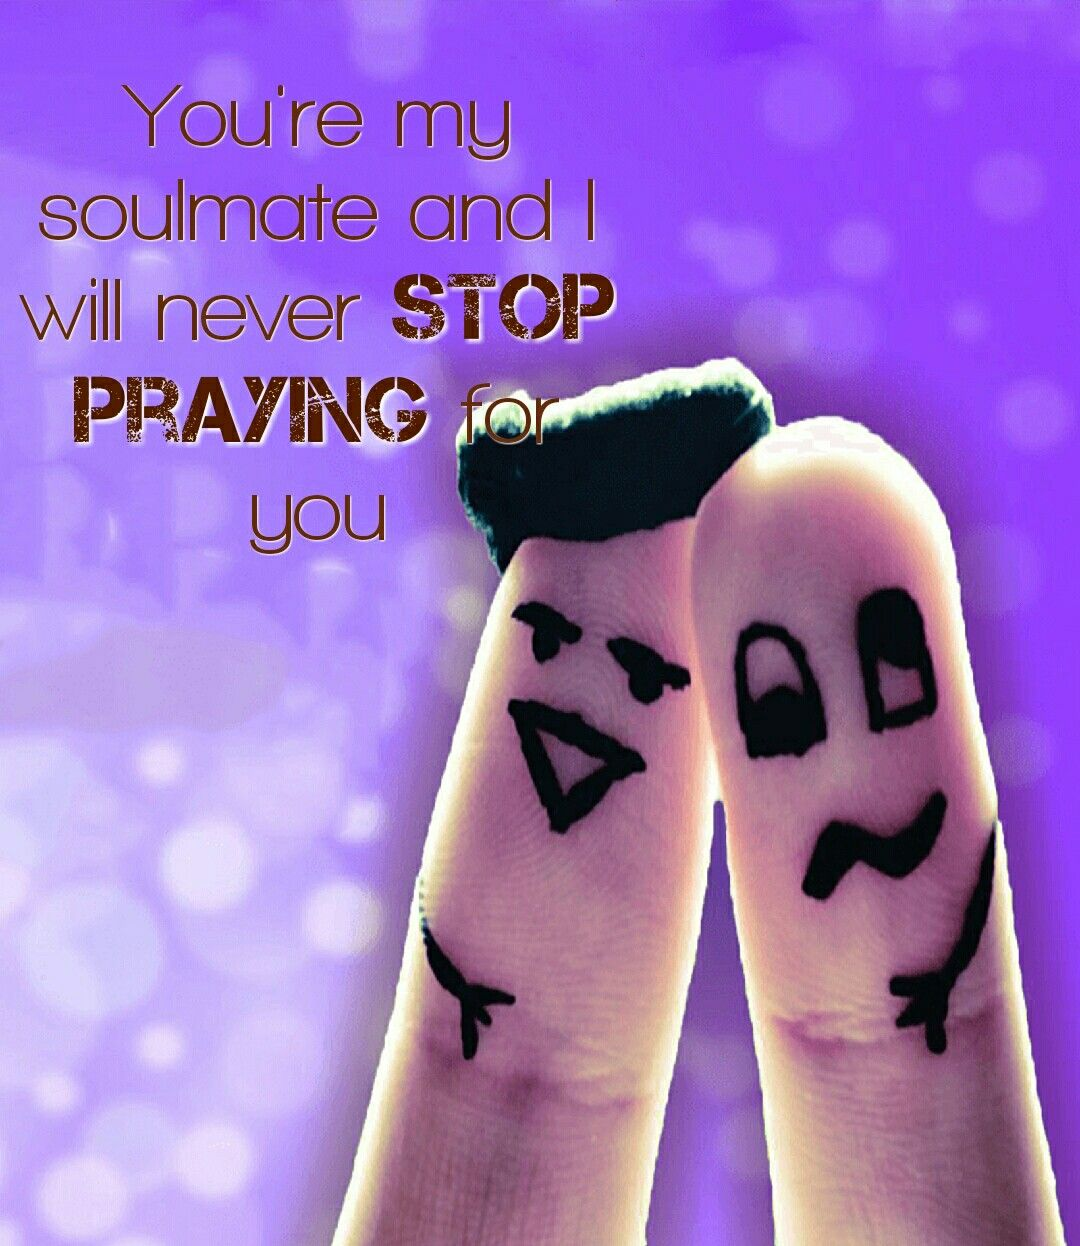 Never Stop Praying For Your Soulmate Friendship Day Quotes Happy Friendship Day Happy Friendship Day Images